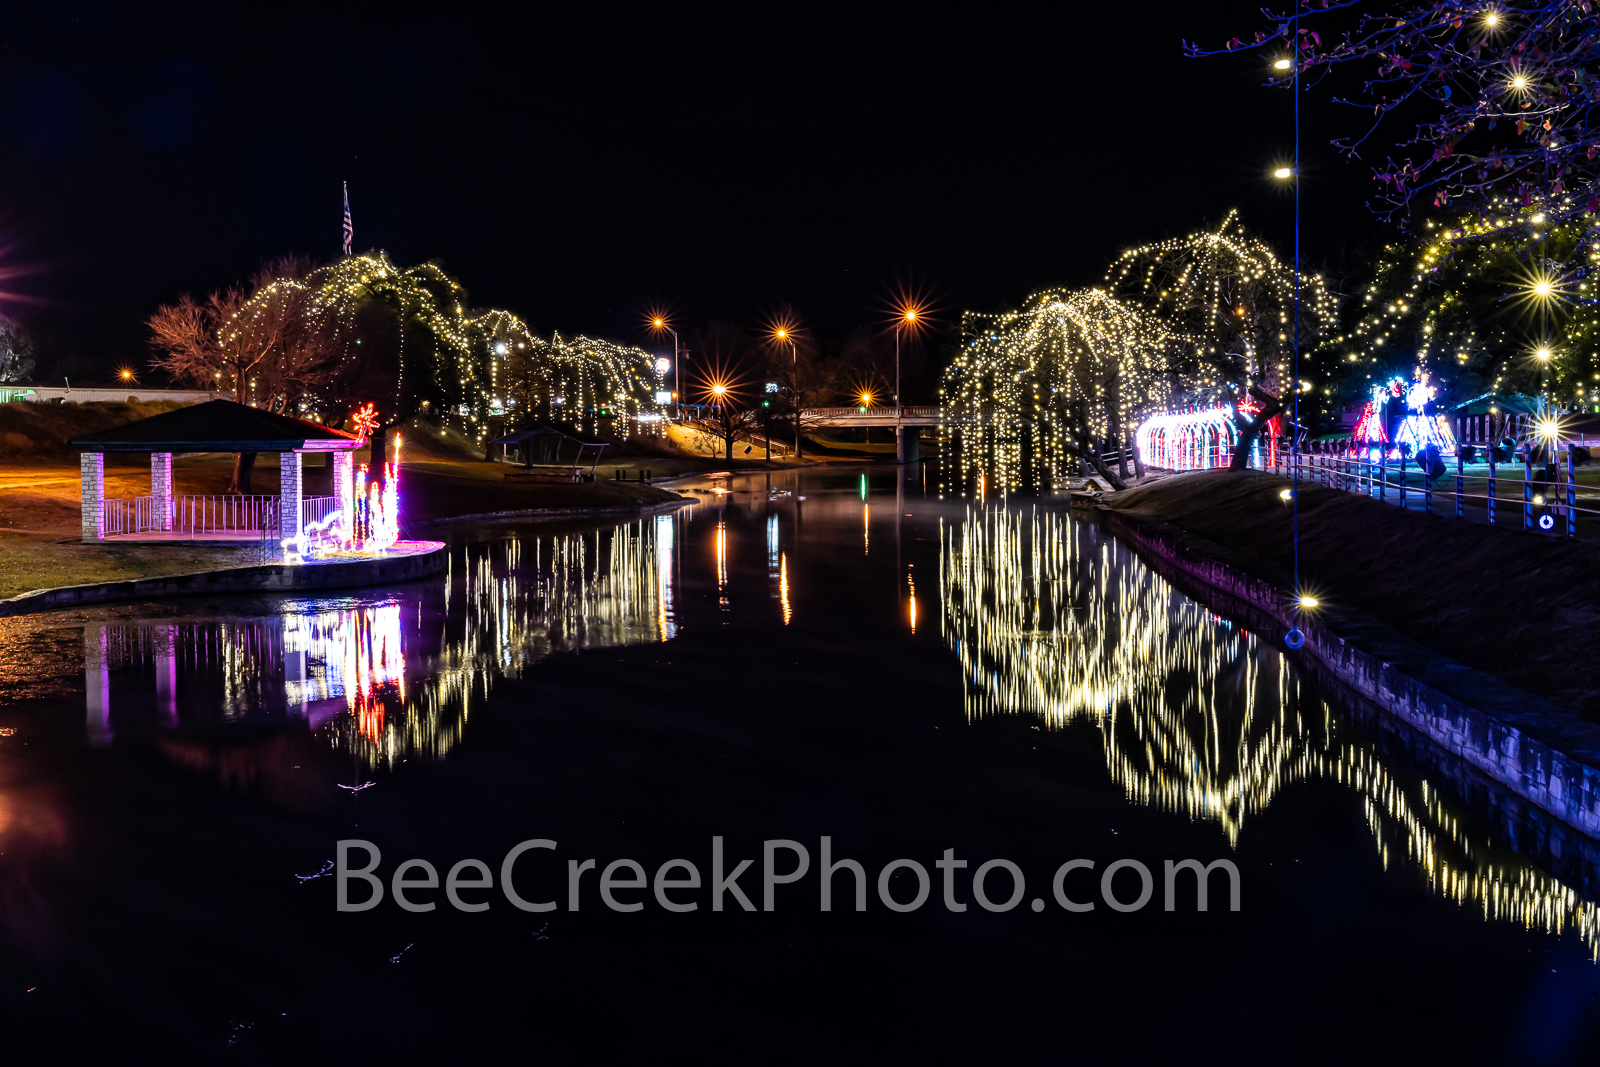 lampasas texas, christmas, texas christmas, river park, trees, dripping lights, reflections, holiday, lights, manger, holiday lights, christmas decor, , photo